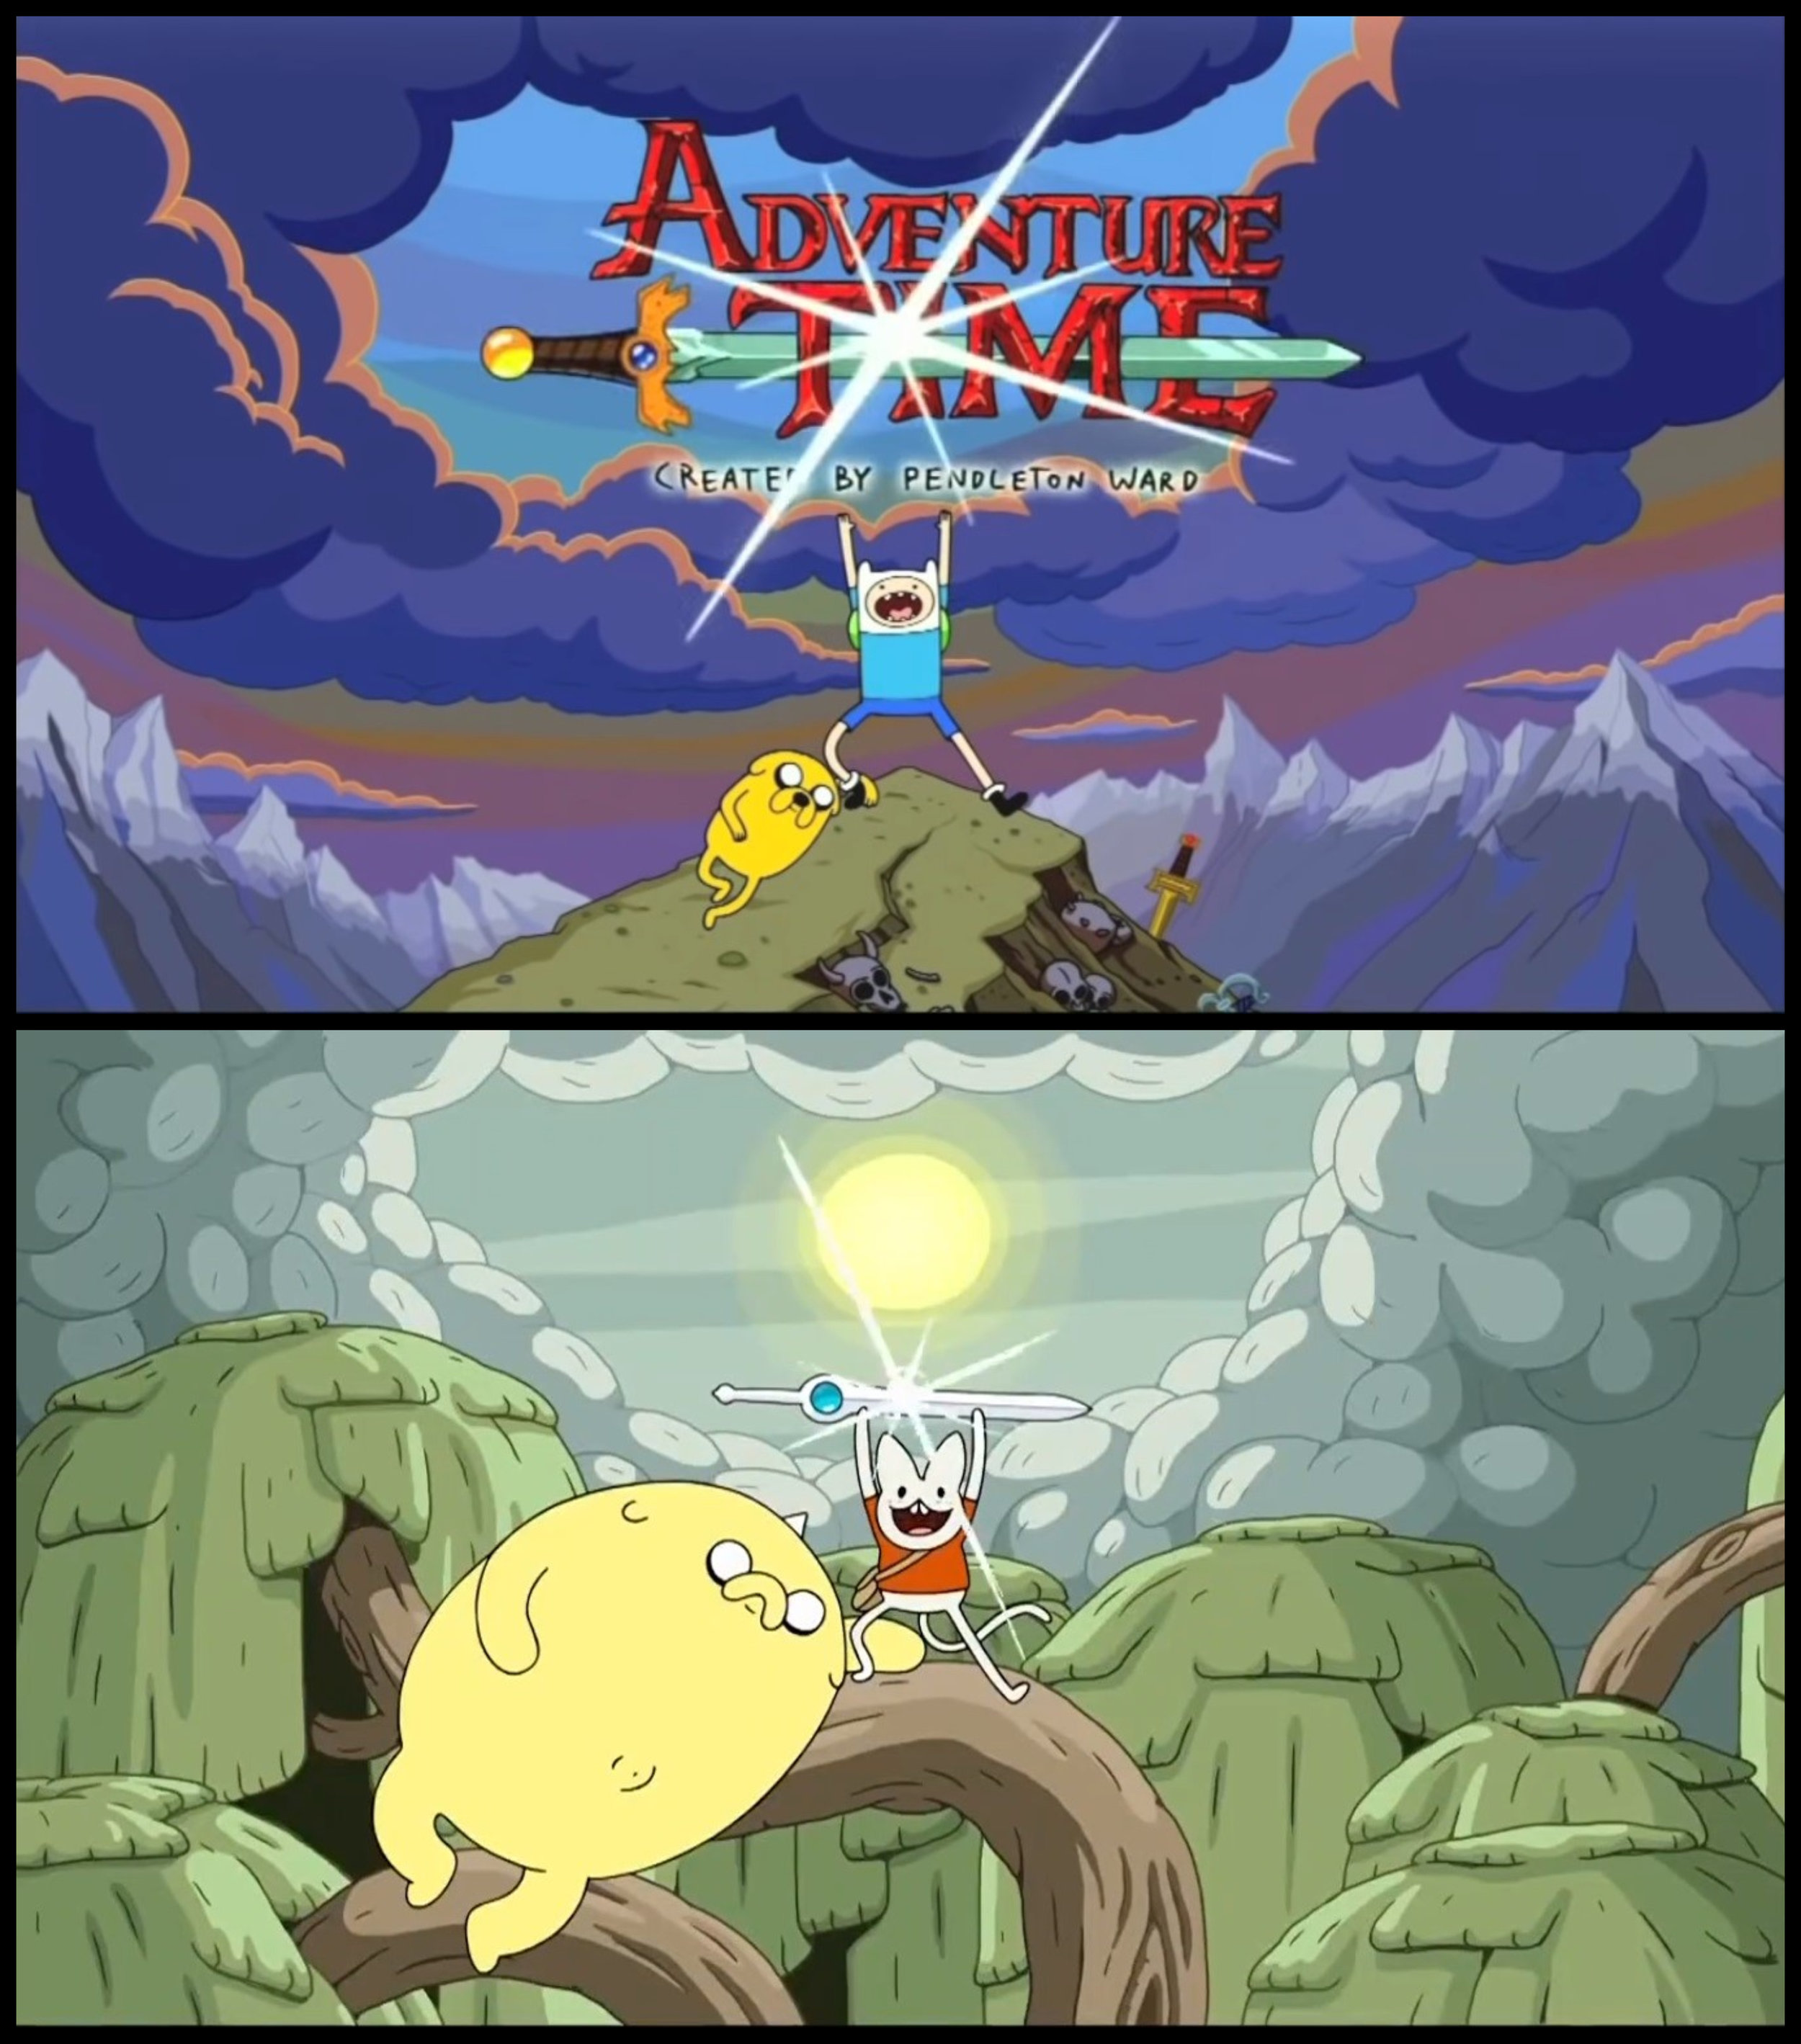 Fig. 4 - (Top)  Adventure Time 's usual opening title sequence with Finn and Jake; (Bottom) Shermy and Beth recreating the title card, taking the mantle as the new heroes of Ooo.